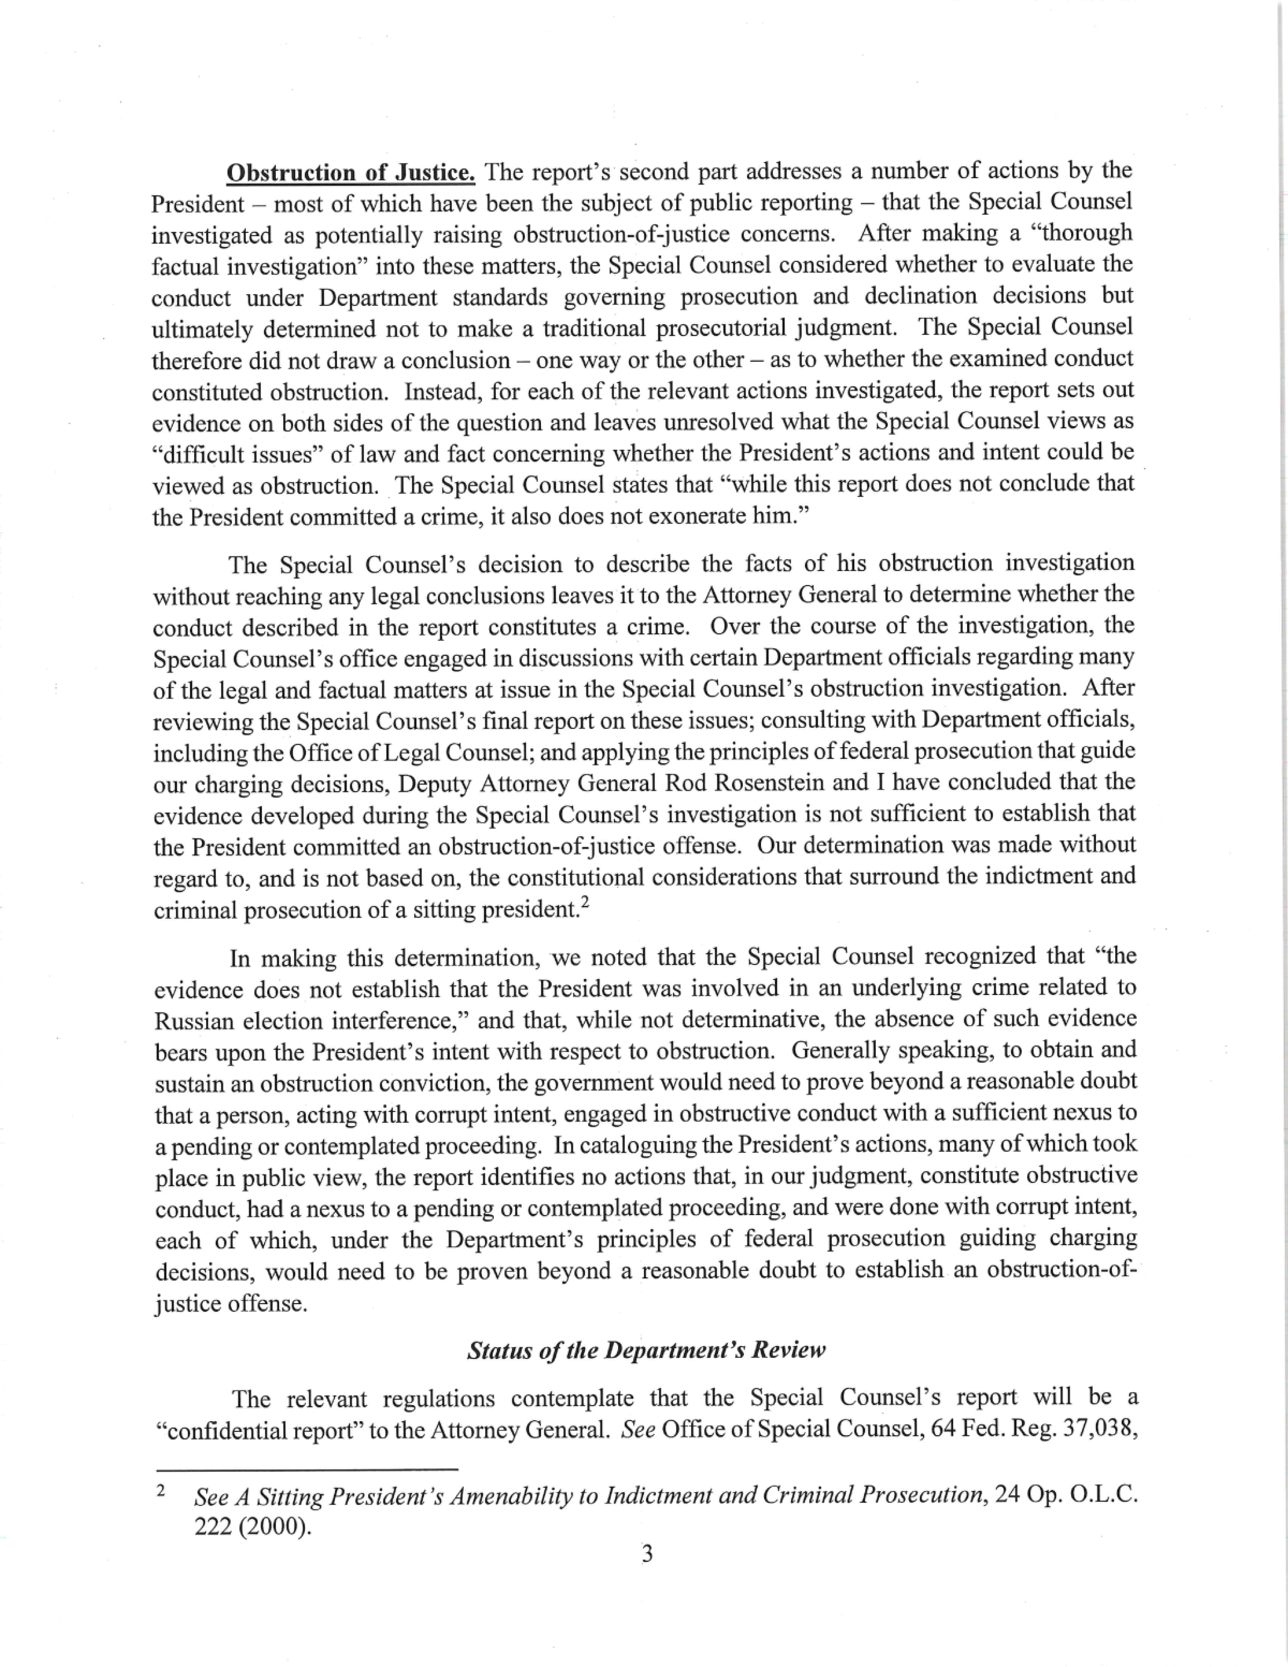 Barr letter-page 3-19-3-24